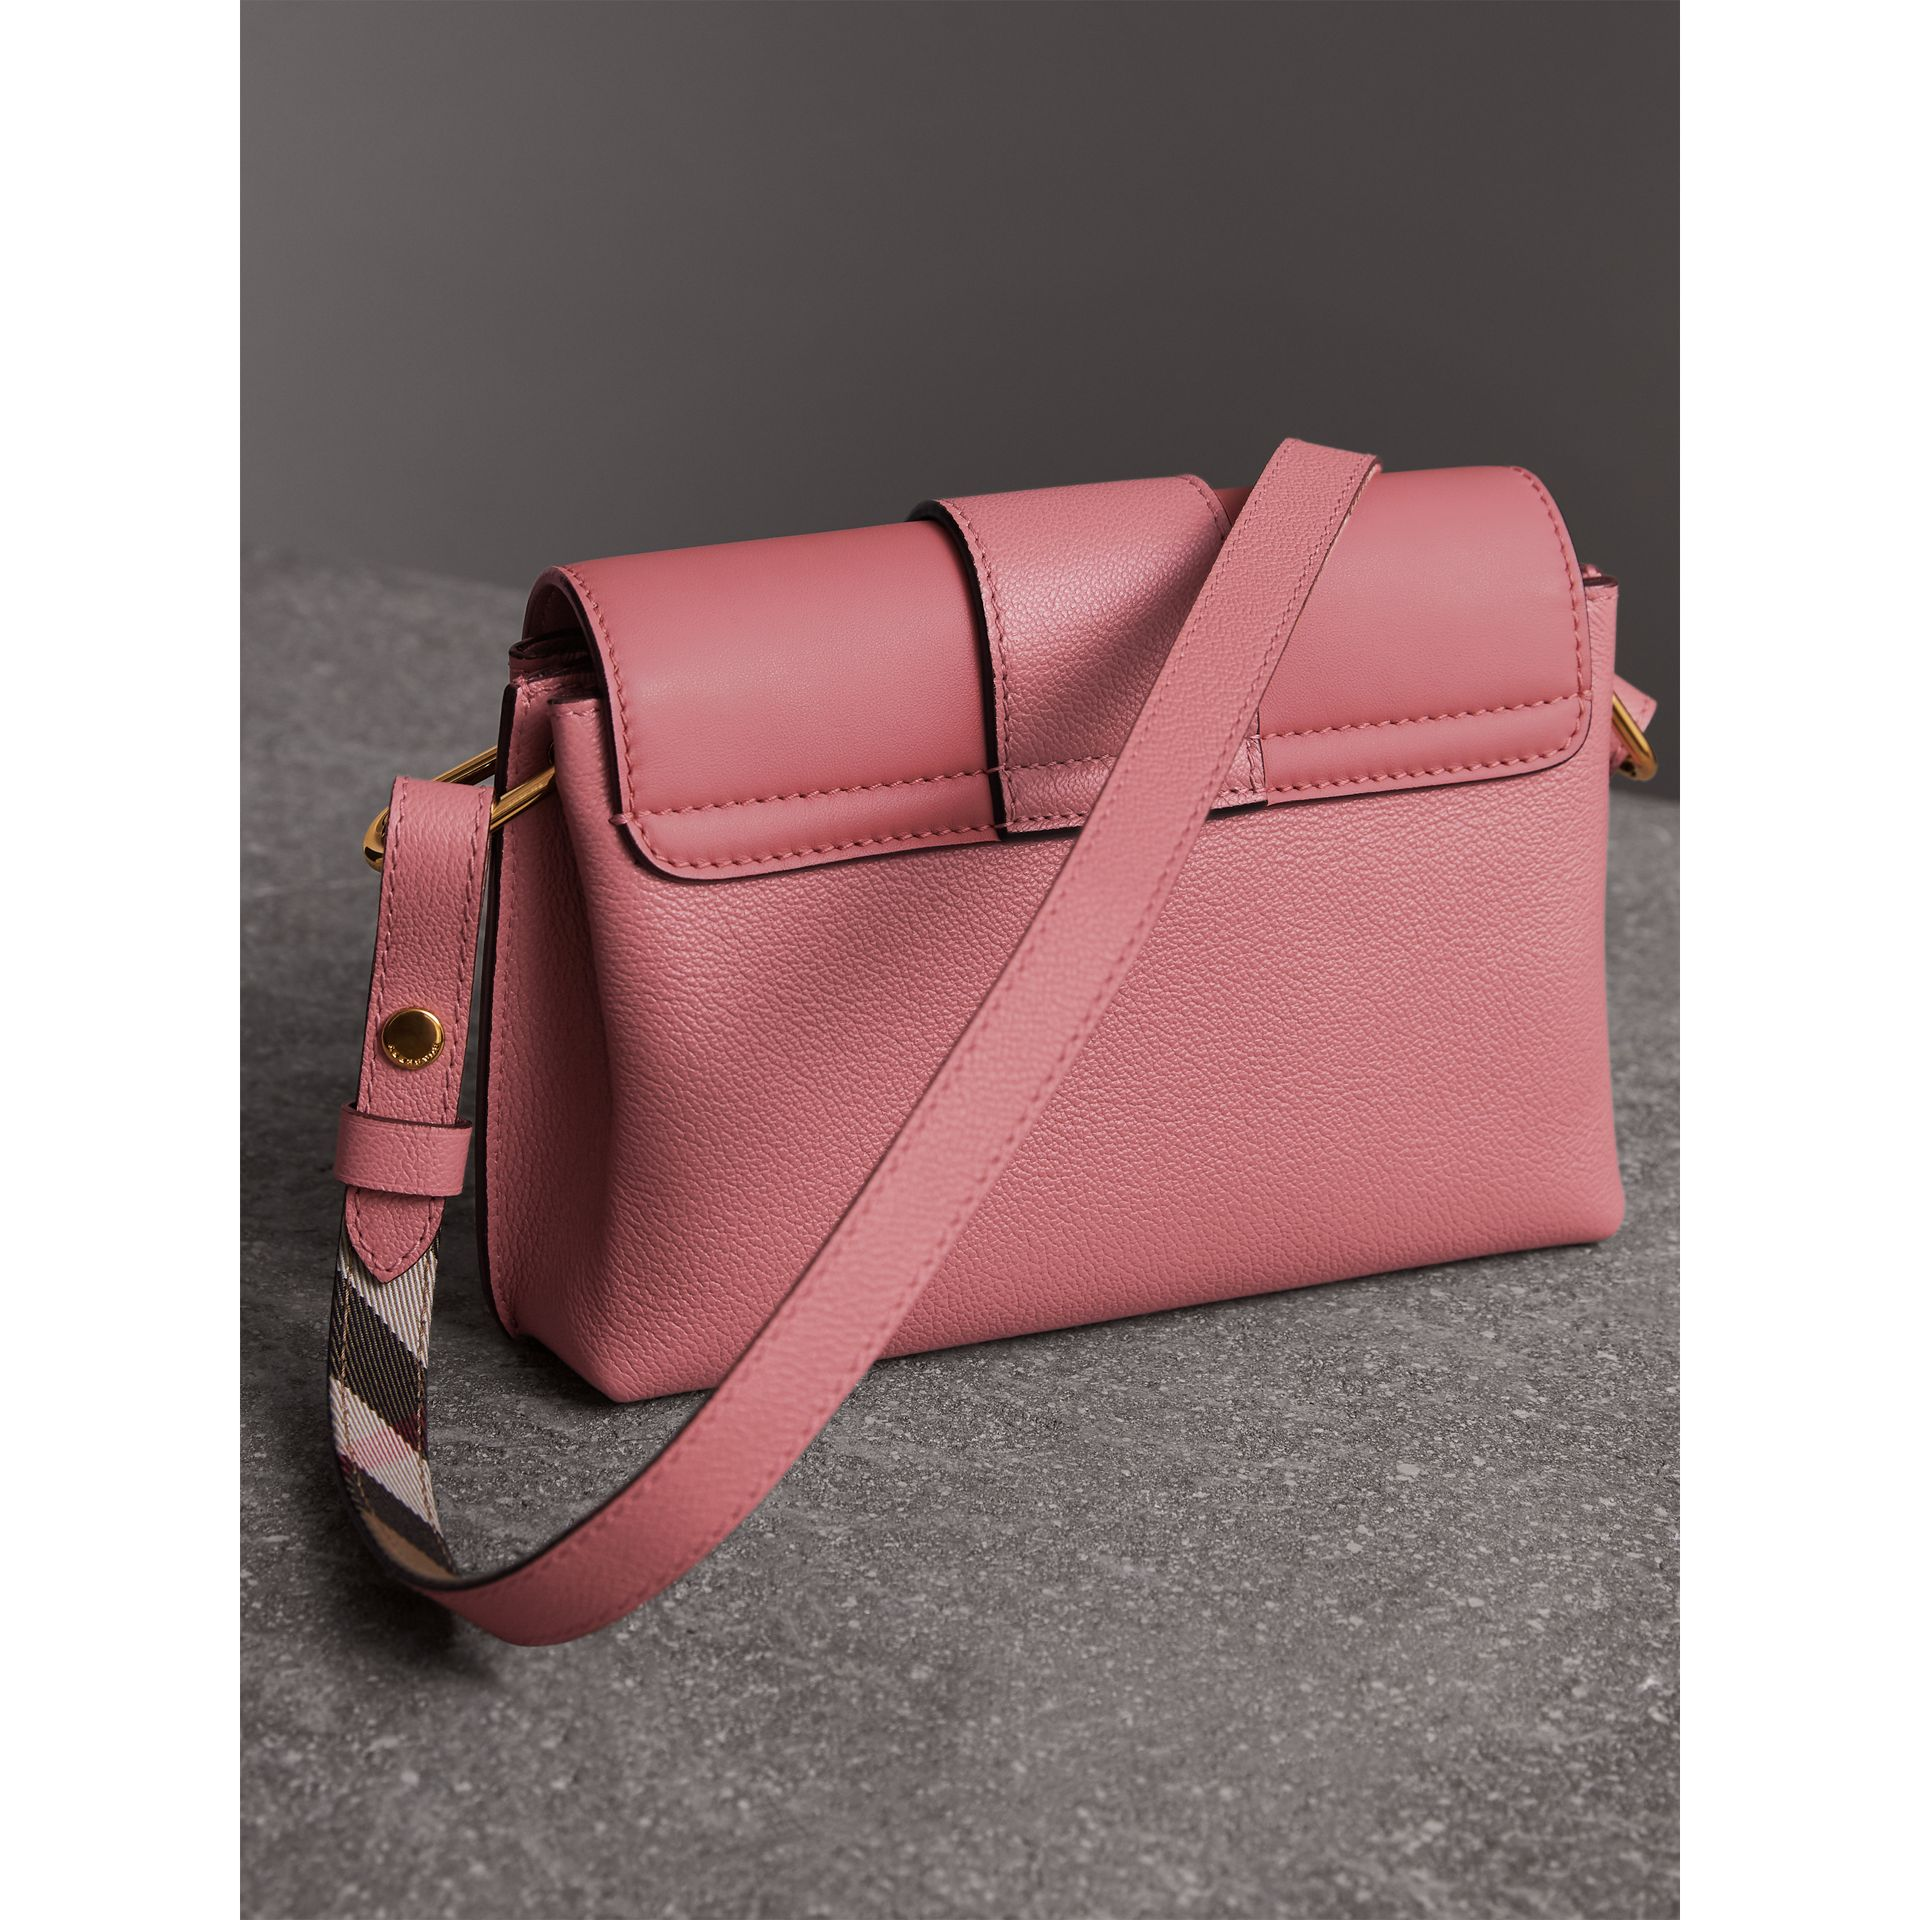 The Buckle Crossbody Bag in Leather in Dusty Pink - Women | Burberry - gallery image 5